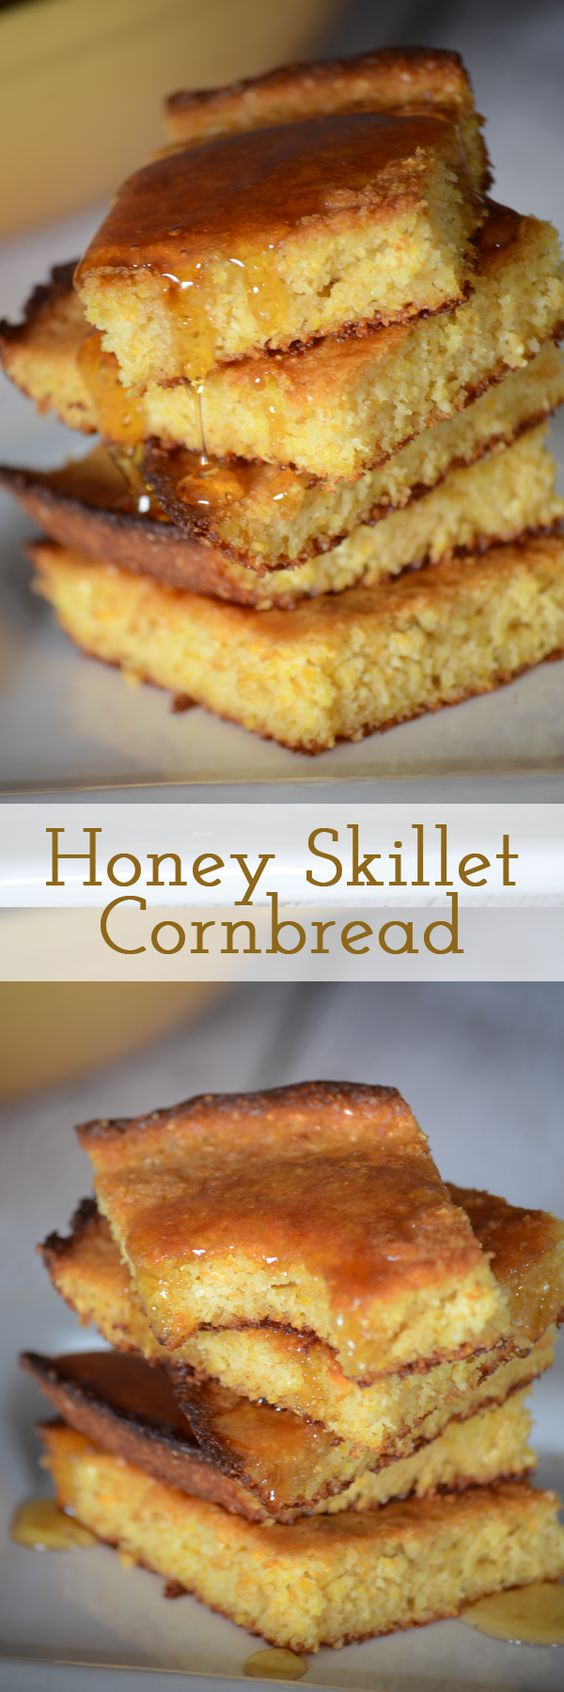 skillet cornbread cornbread cornbread recipes skillets honey honey ...